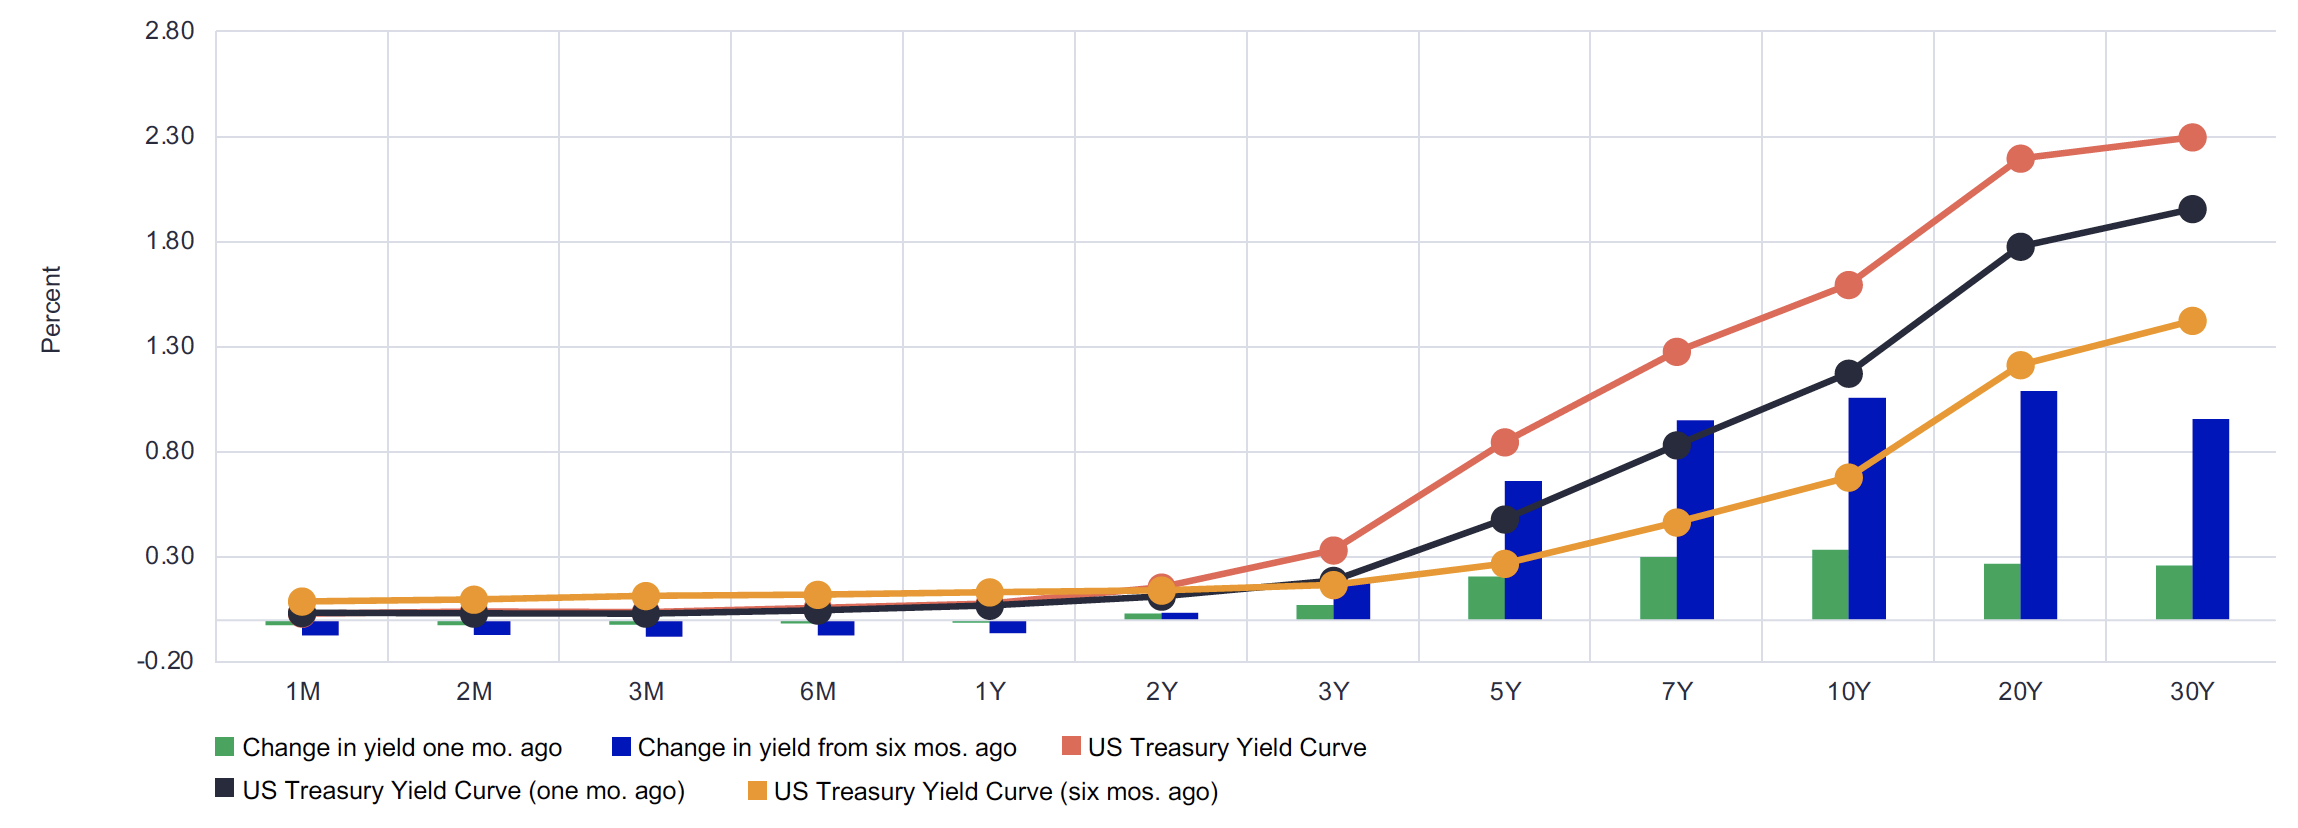 This chart plots the US Treasury yield curve from 1 month to 30 year maturities. There are three lines representing the yield curve shape 6 months ago, 1 month ago and as of March 31, 2021. While the slope of each line starts flat and then moves higher, the steepness fro 1 month ago is greater than 6 months ago and the most recent is steeper than both.   There is also a bar chart on the same graph showing the change in yield for the various maturities from 1 month and 6 months ago. The 10 year has increased 0.08% in 1 month and 0.27% in 6 months. The 20 year has increased 0.09% in 1 month and 0.28& in 6 months.